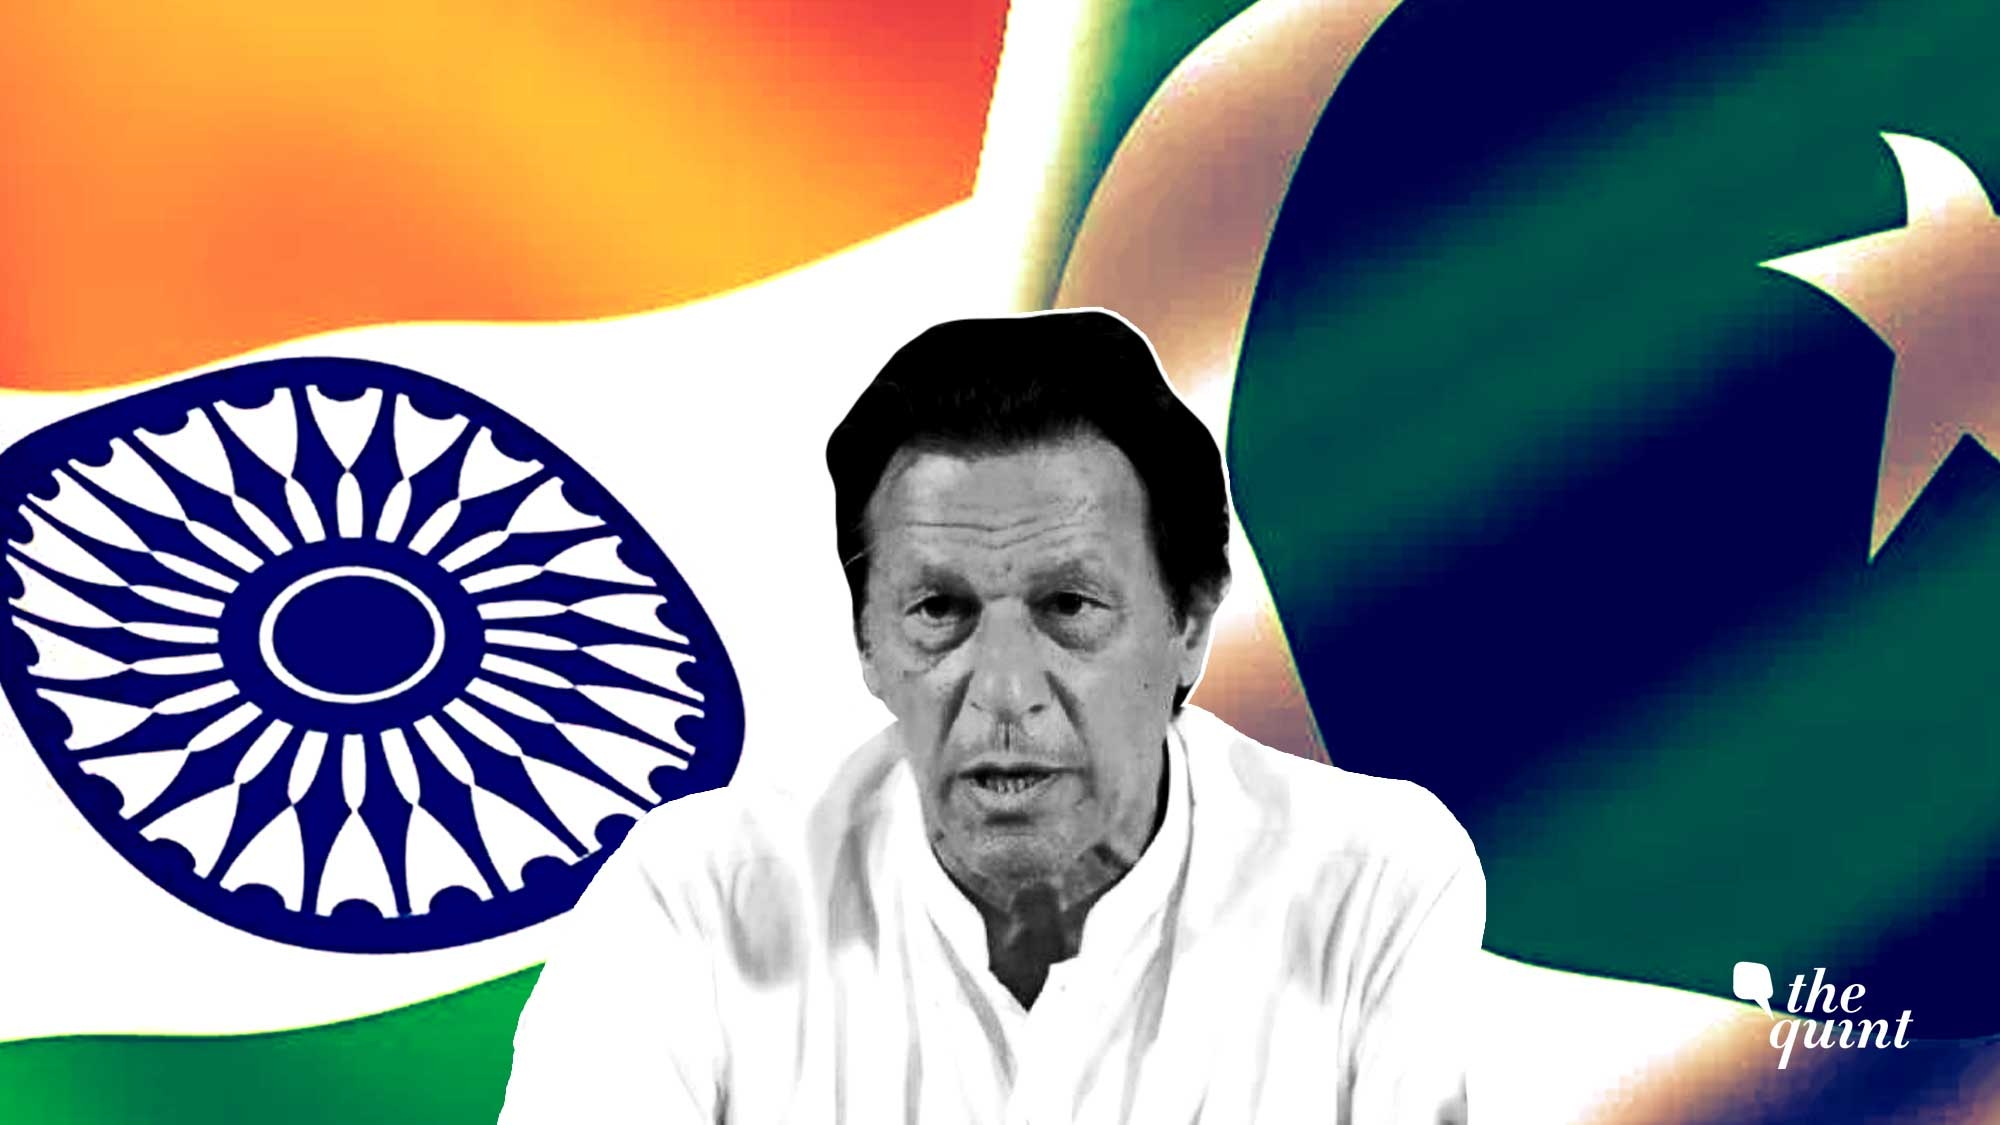 How Imran Khan Is Exploiting India's Fault Lines Under Modi's Rule